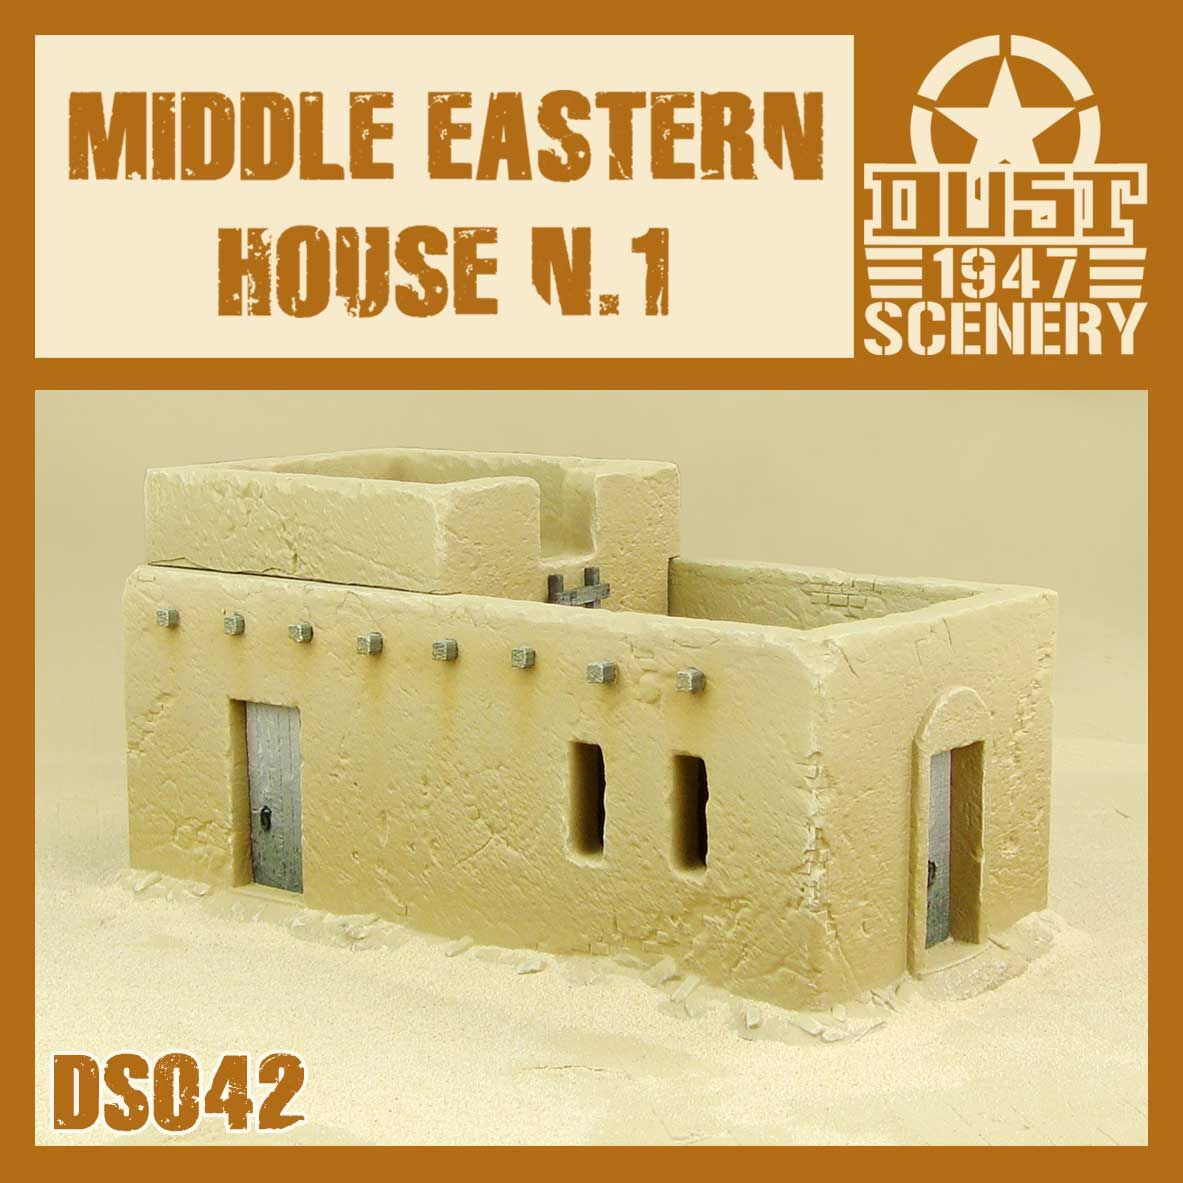 Middle Eastern House N.1